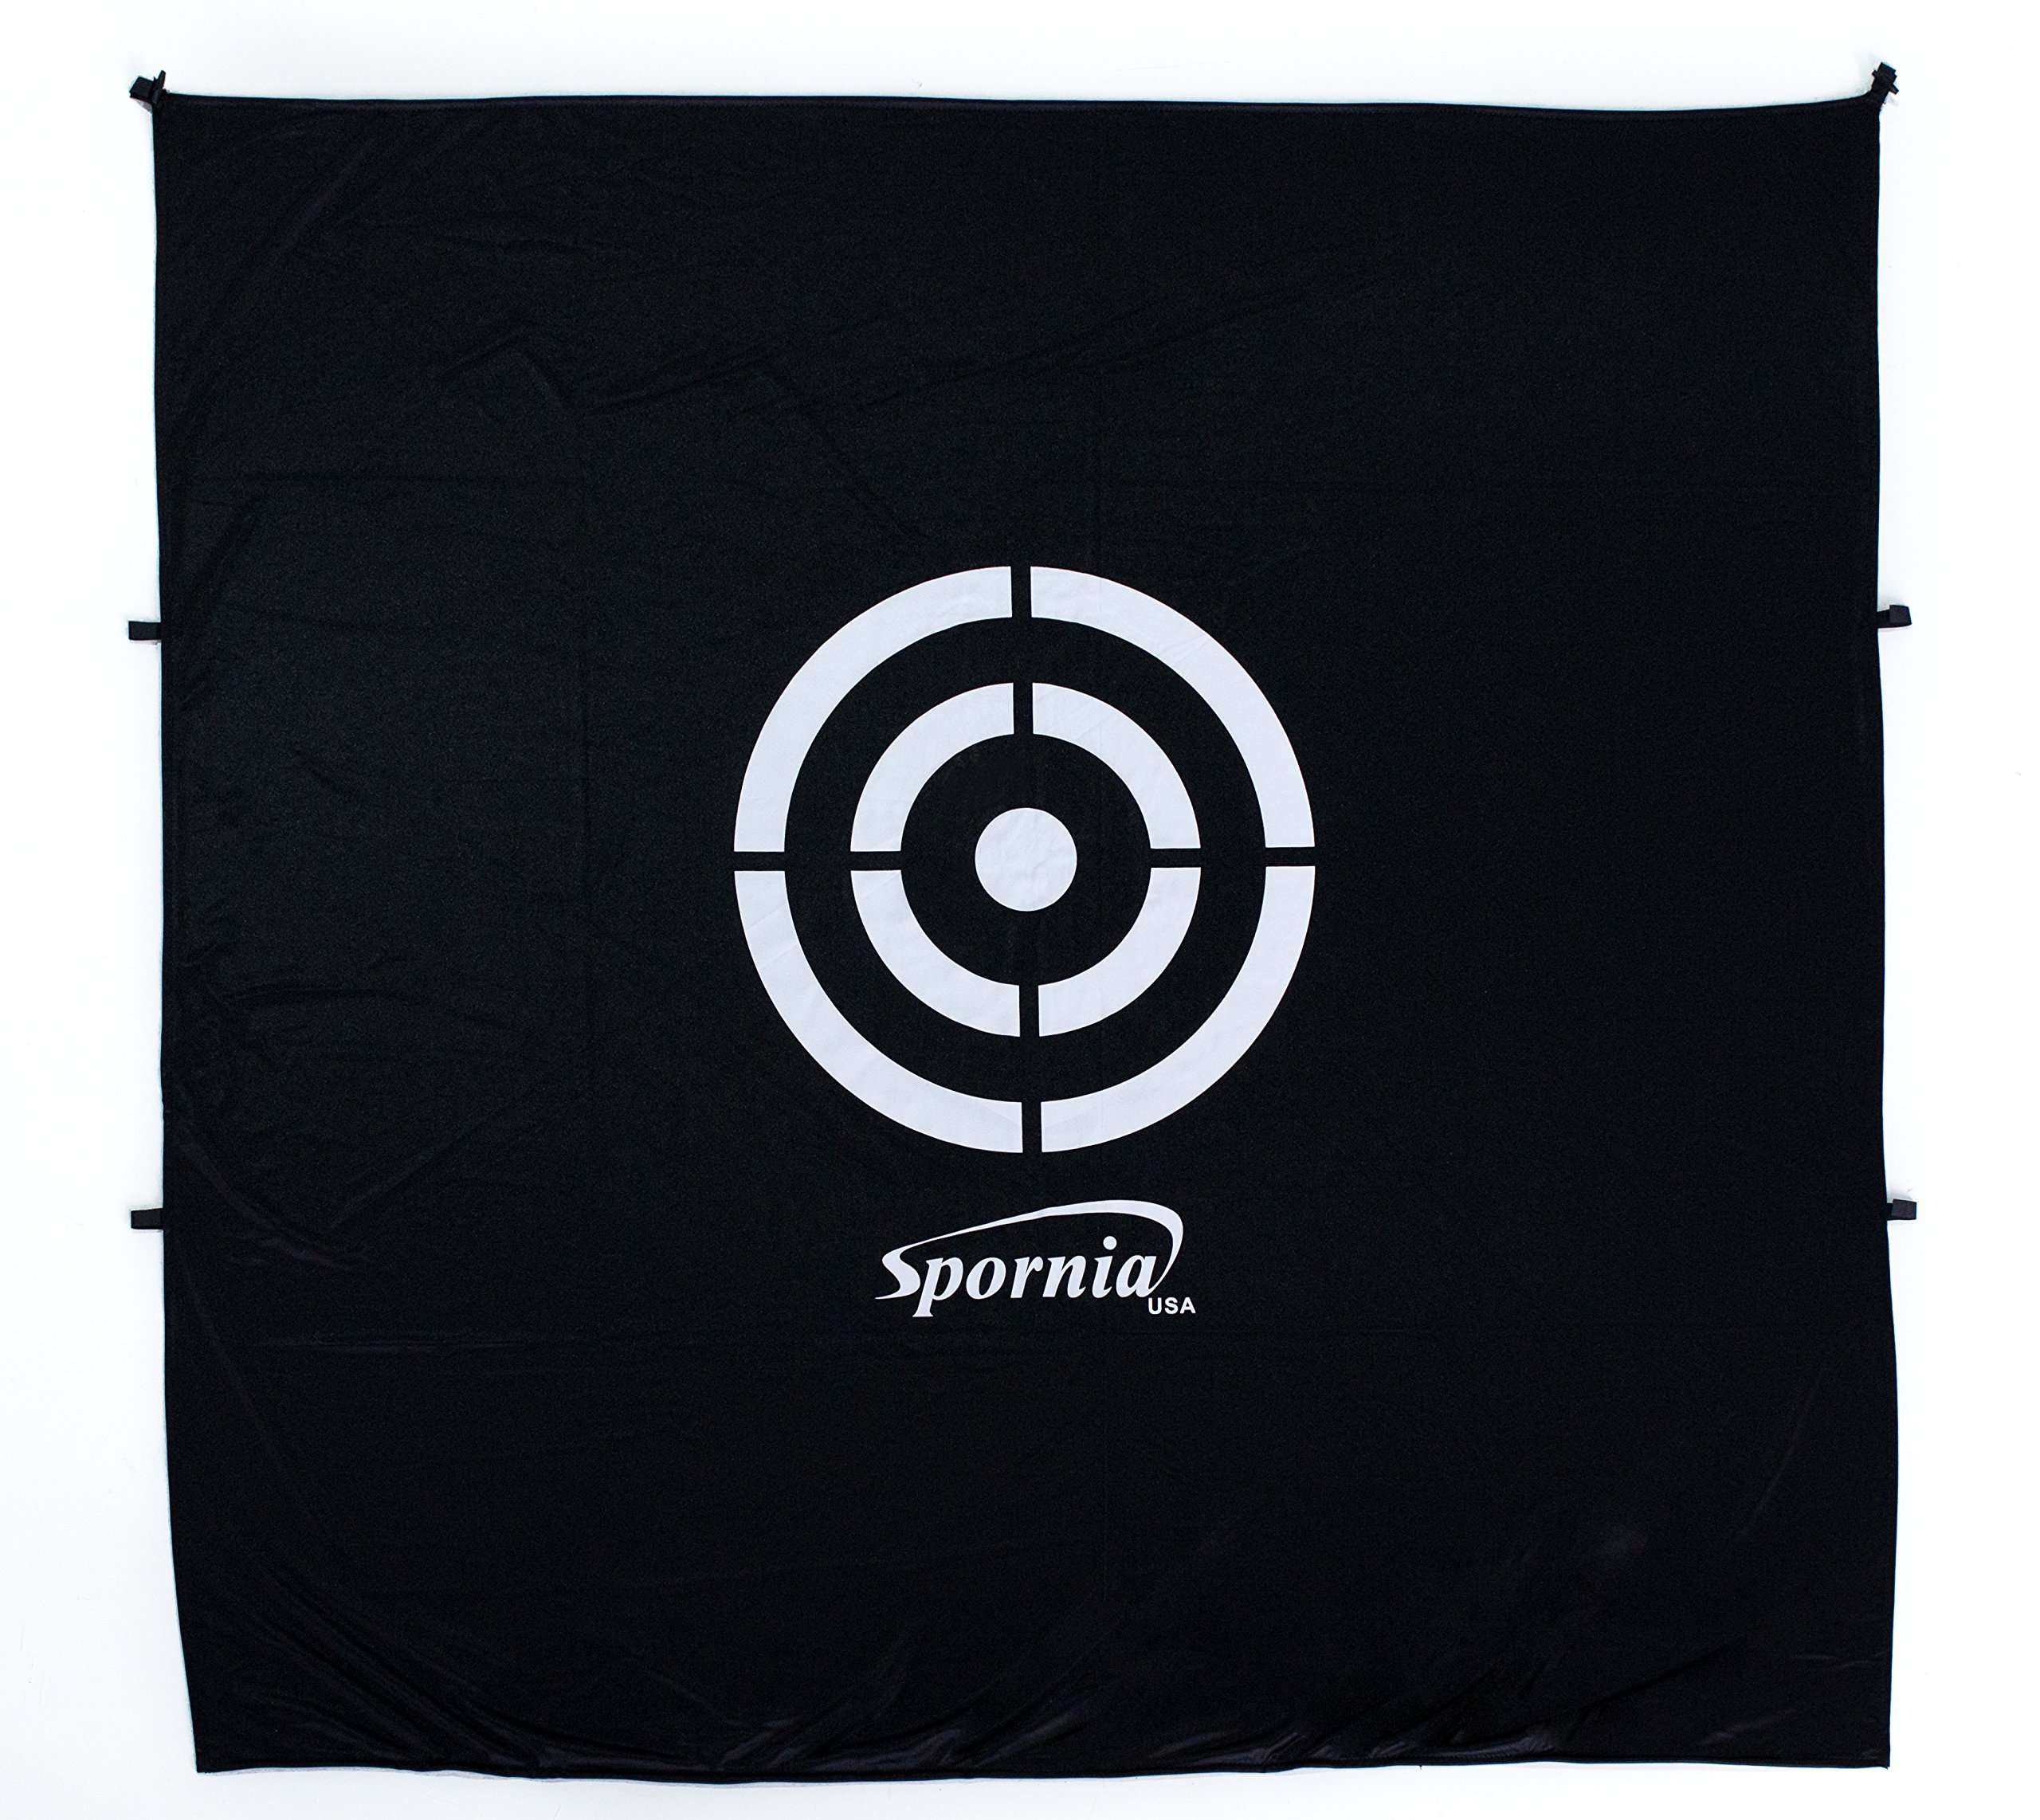 Spornia SPG-5 Golf Practice Net- Automatic Ball Return System with Target sheet, Two Side Barrier, and Chipping Target by Spornia (Image #7)